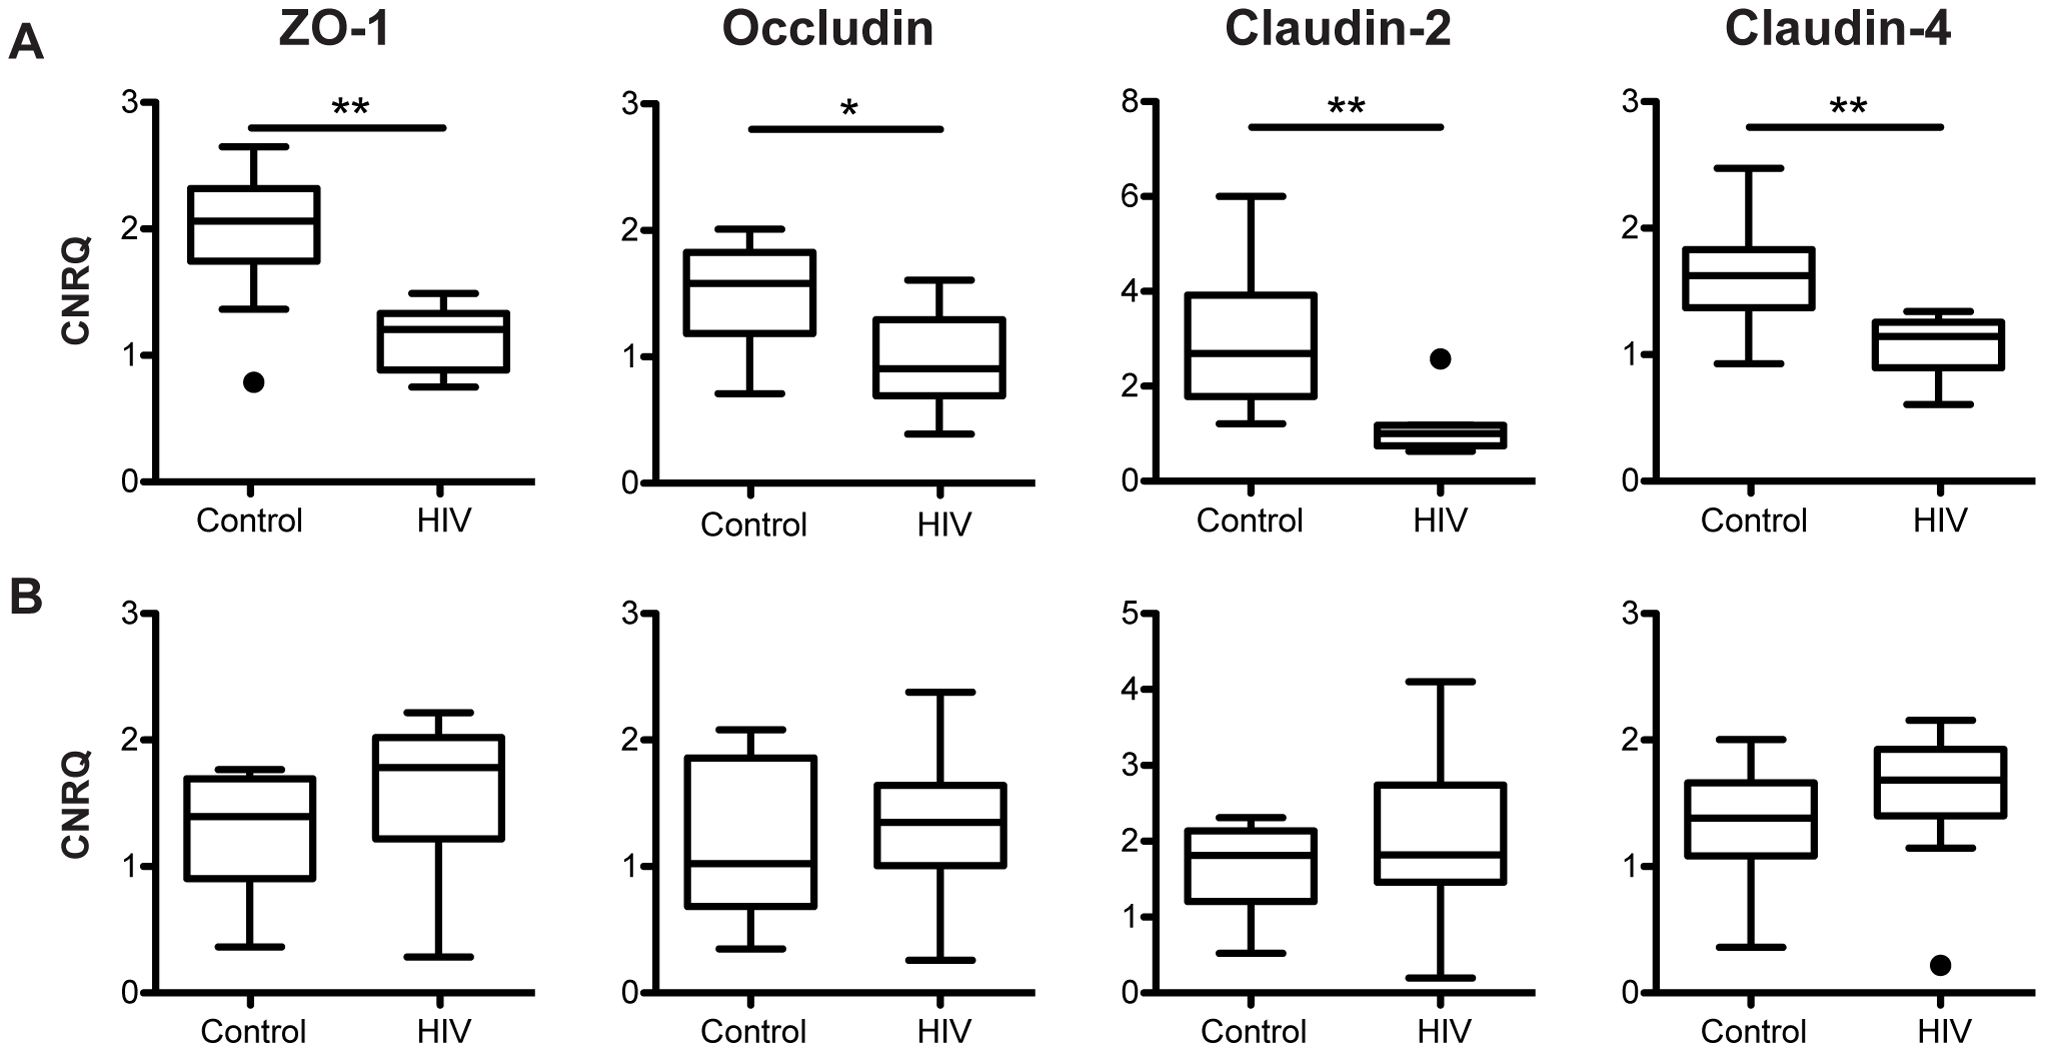 Tight junctional transcripts are decreased in the colon, not the terminal ileum, of HIV+ individuals.